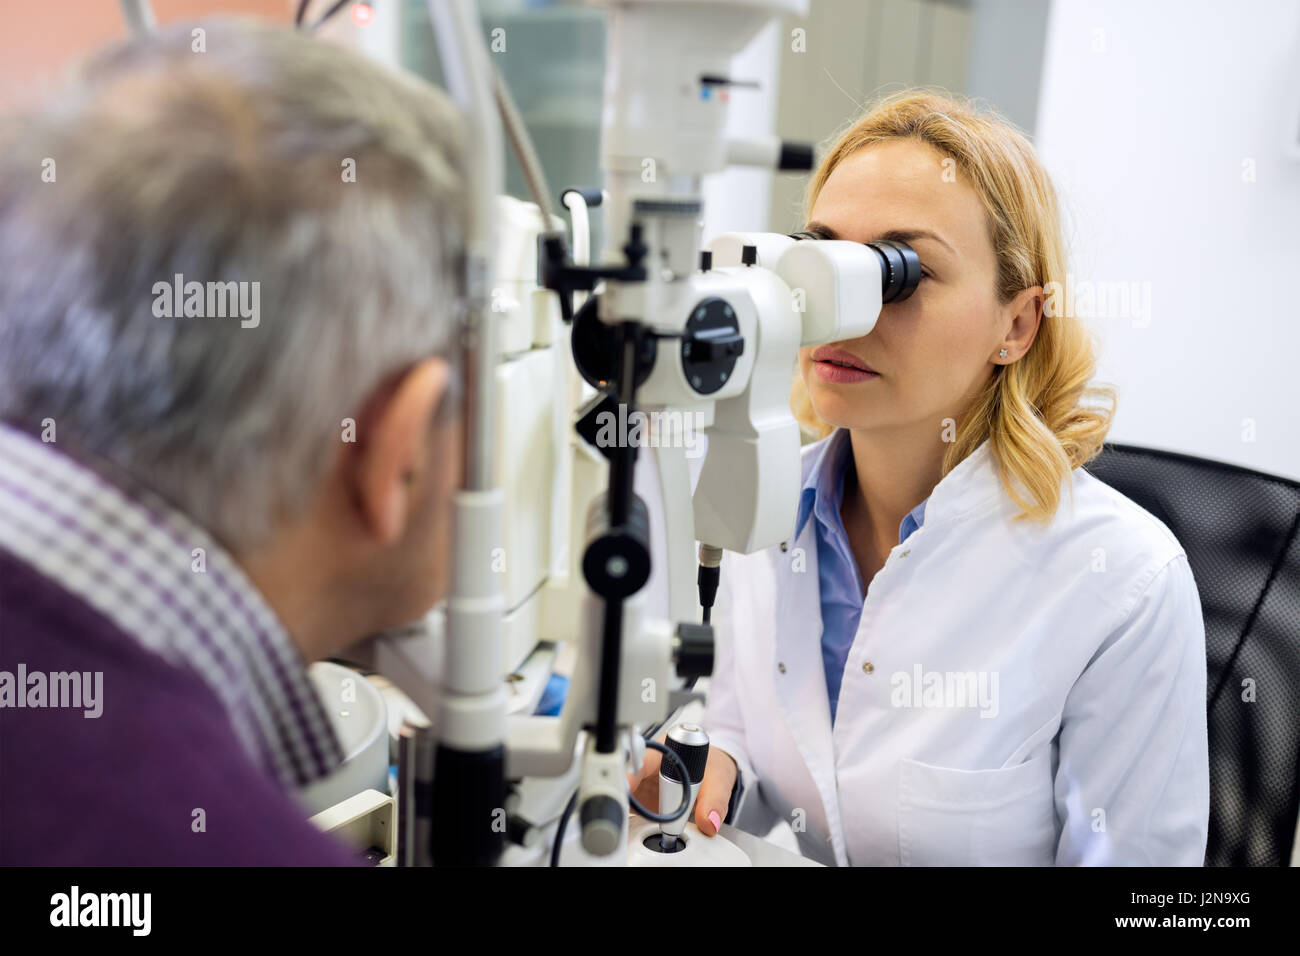 Patient eye doctor checkup patient eyes with apparatus - Stock Image